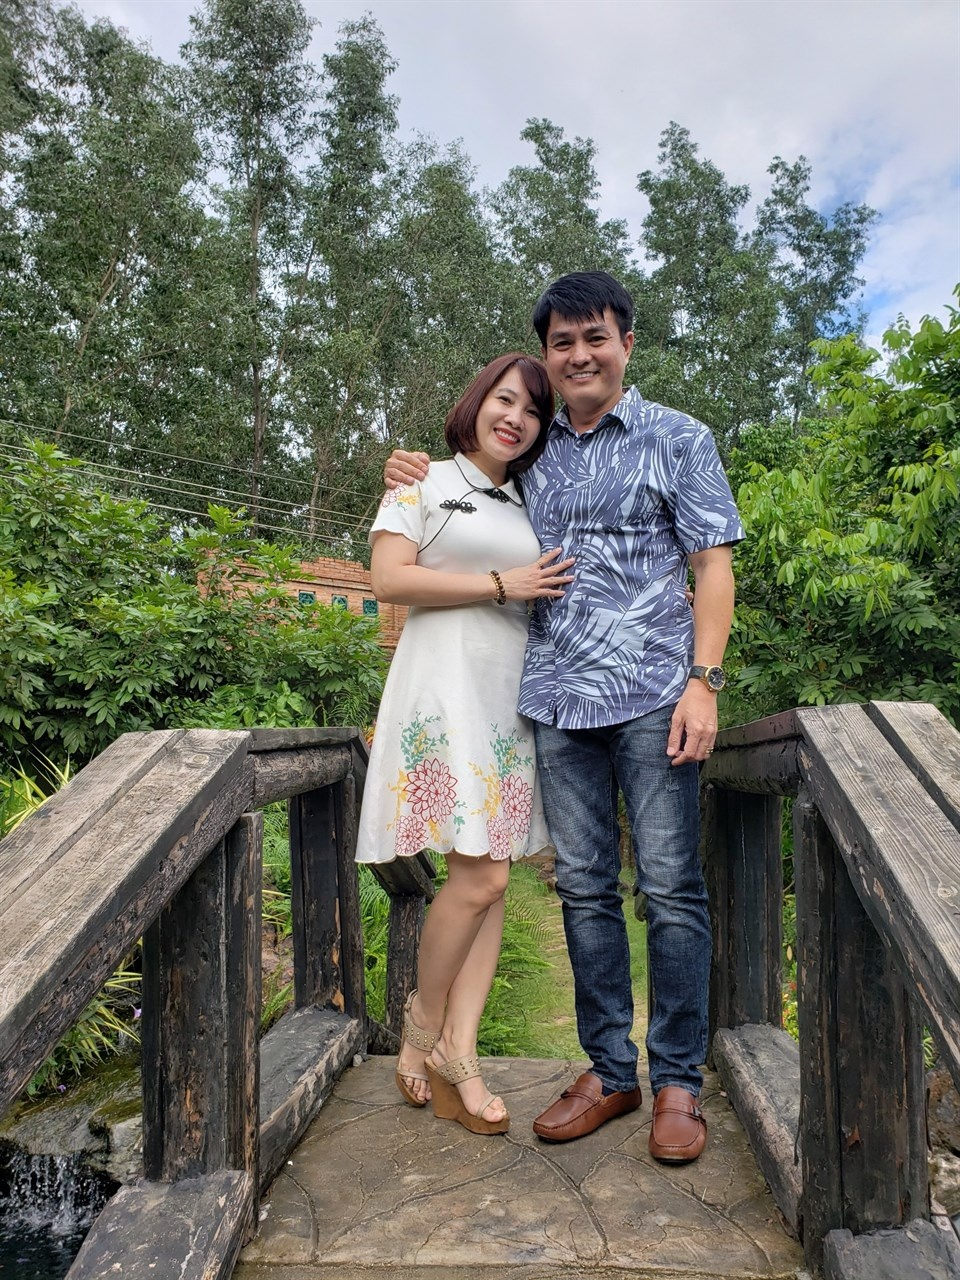 phim vong xoay tinh yeu anh 6